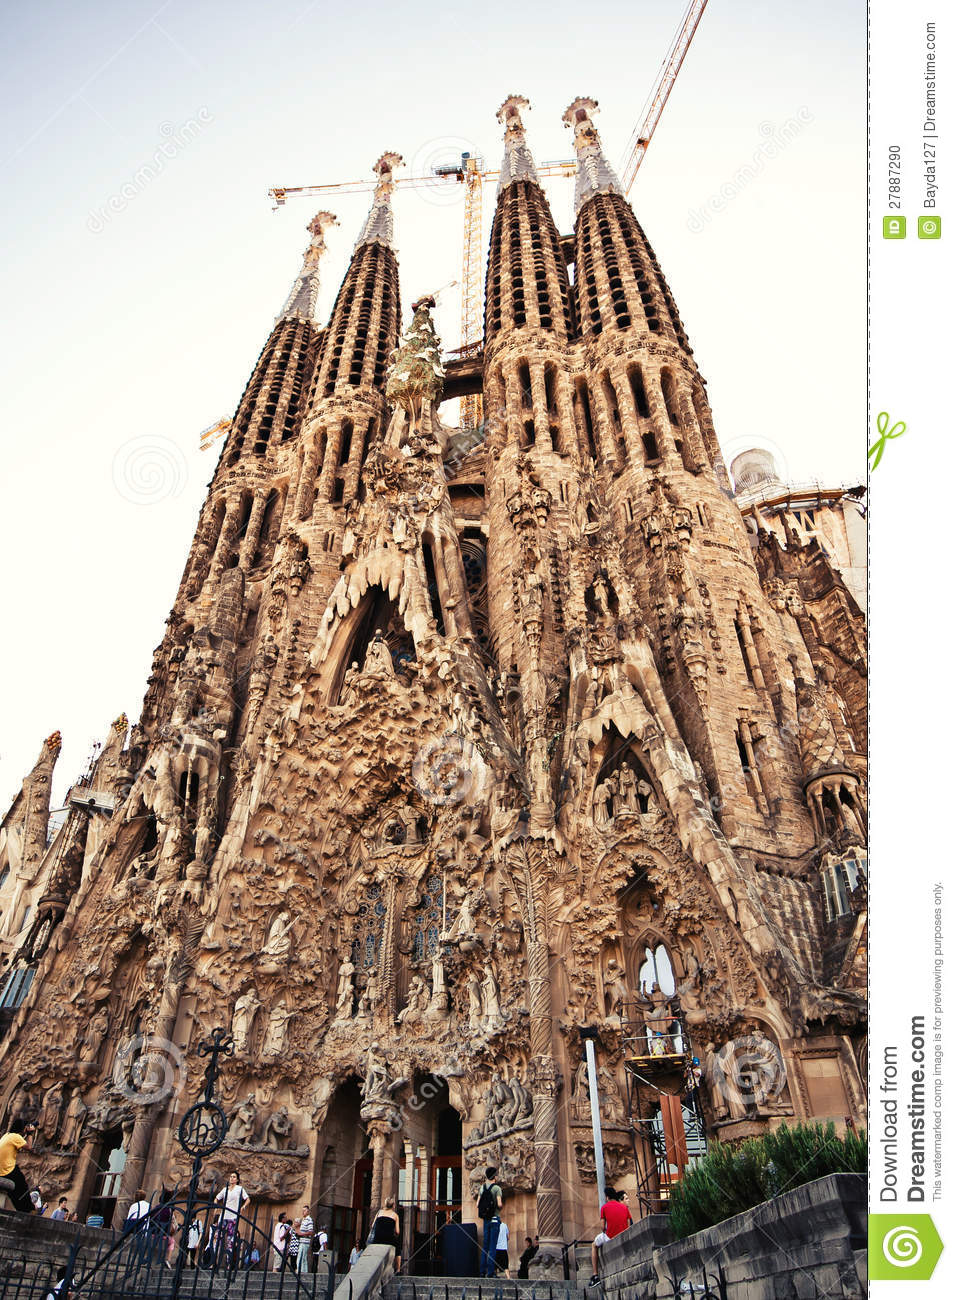 La sagrada familia in barcelona spain editorial image for La sagrada familia barcelona spain